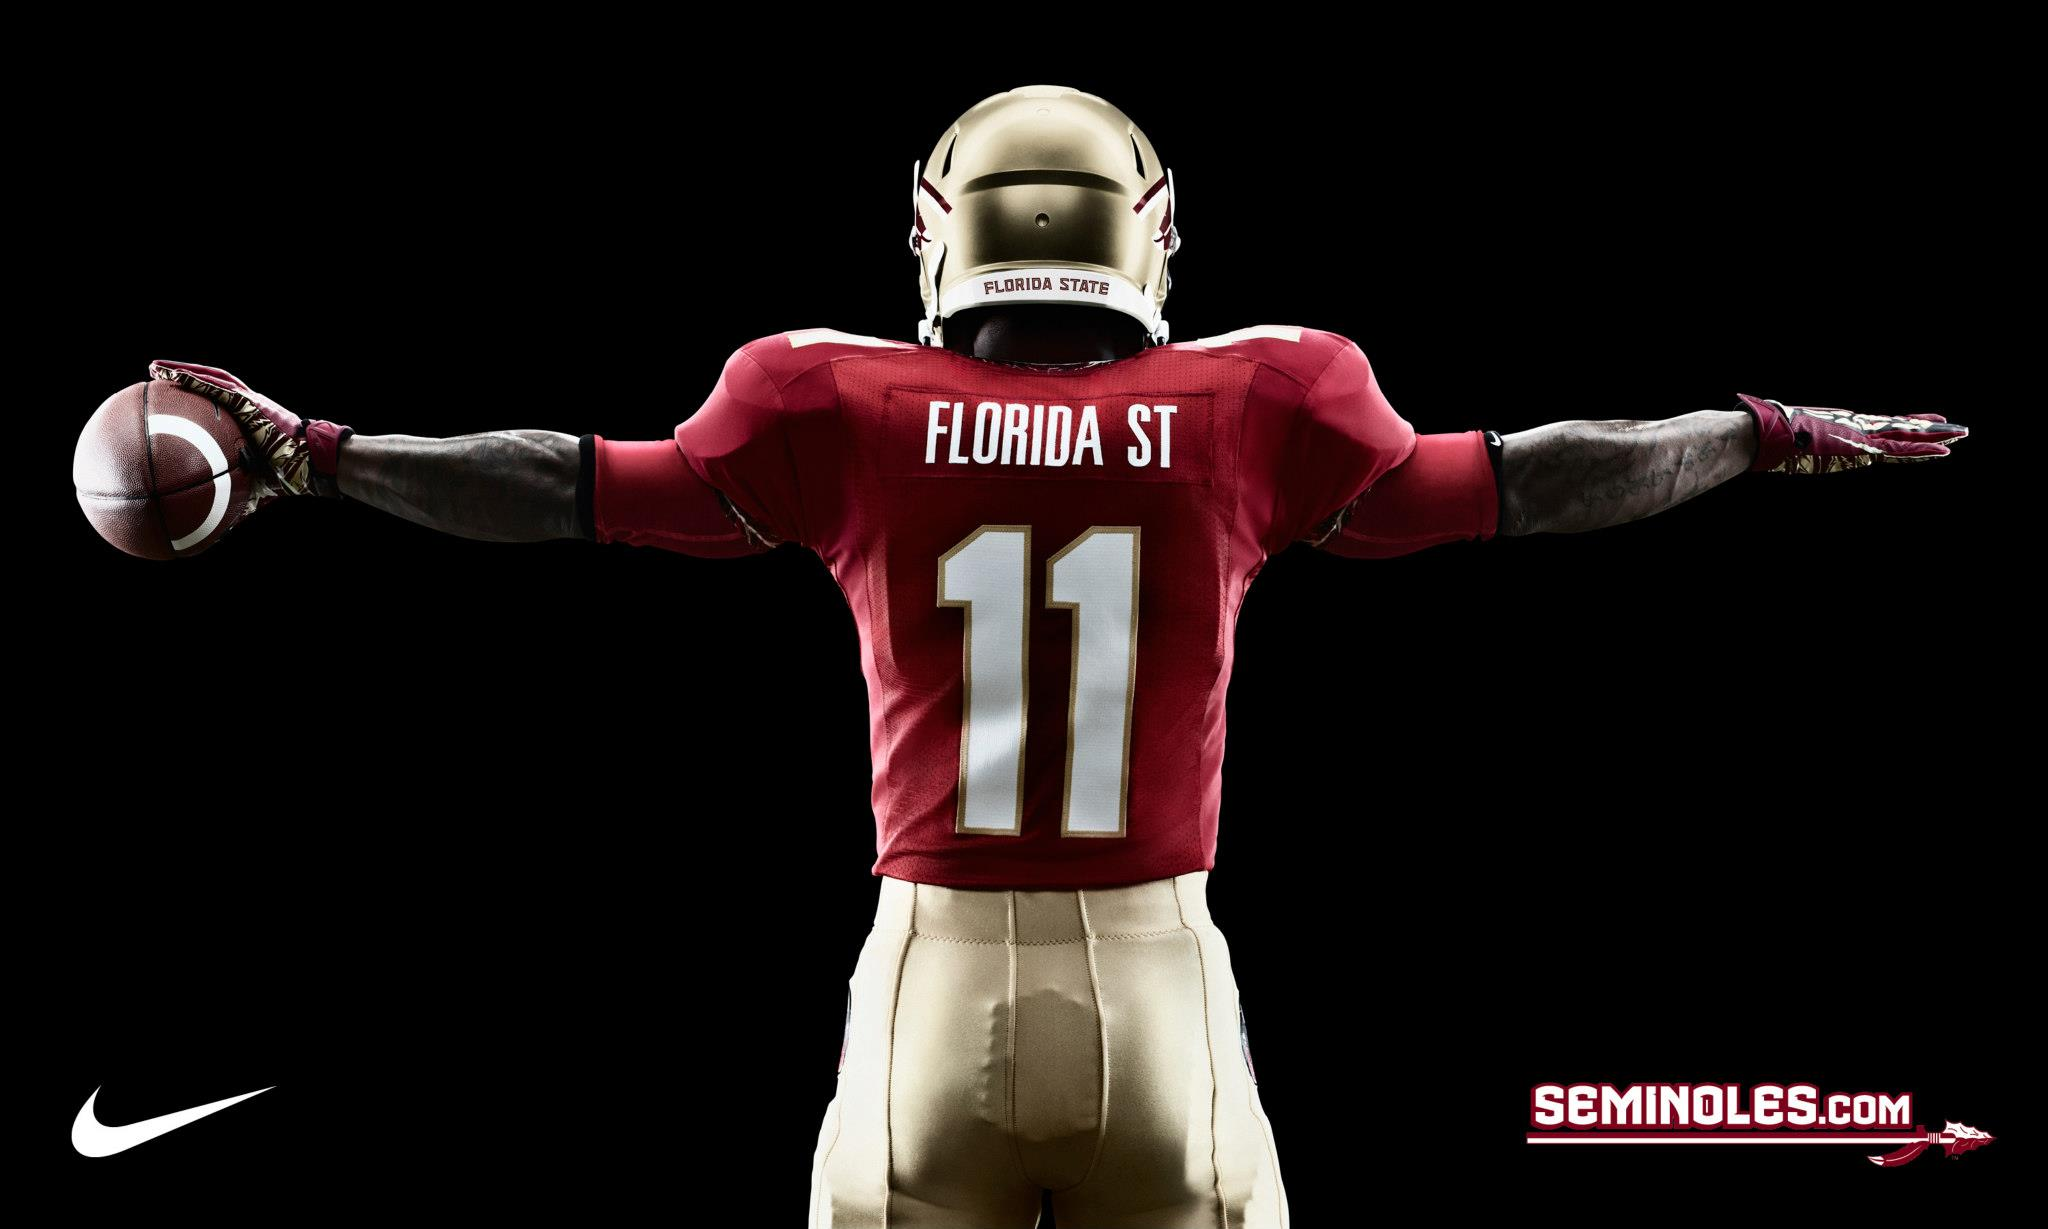 Florida state seminoles wallpapers wallpaper cave forida state seminoles college football 14 wallpaper 2048x1229 voltagebd Choice Image